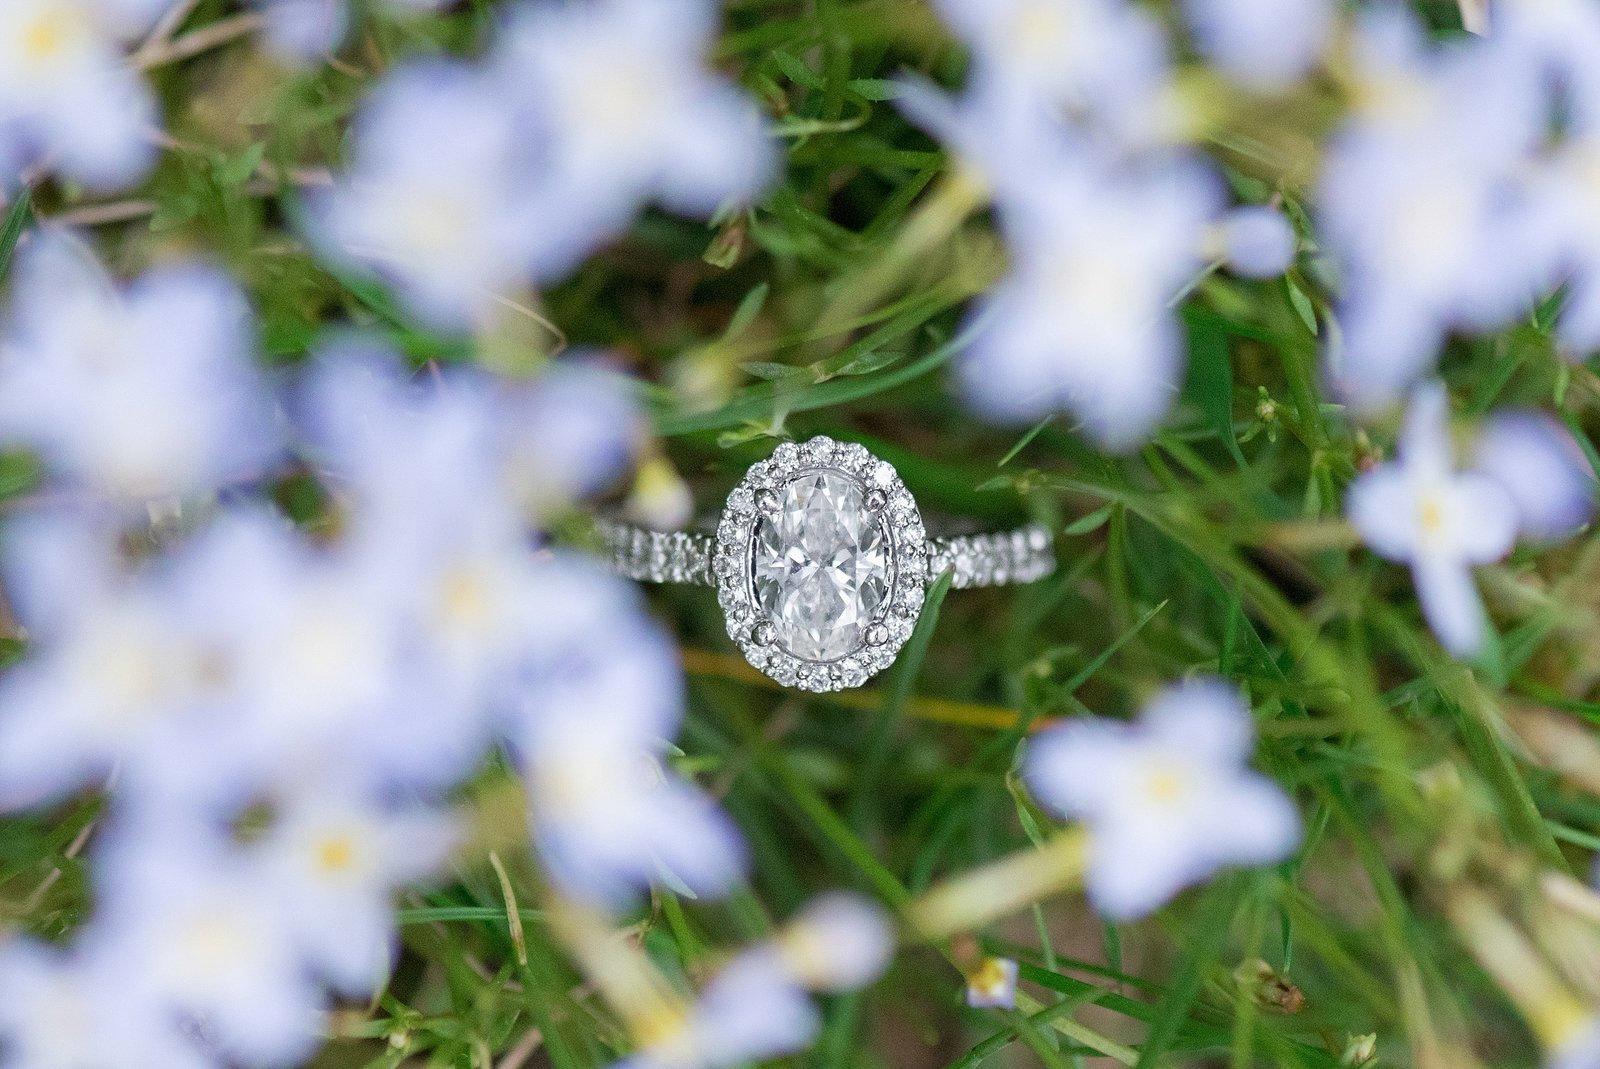 Oval Diamond with halo Engagement Ring in light blue flowers photo